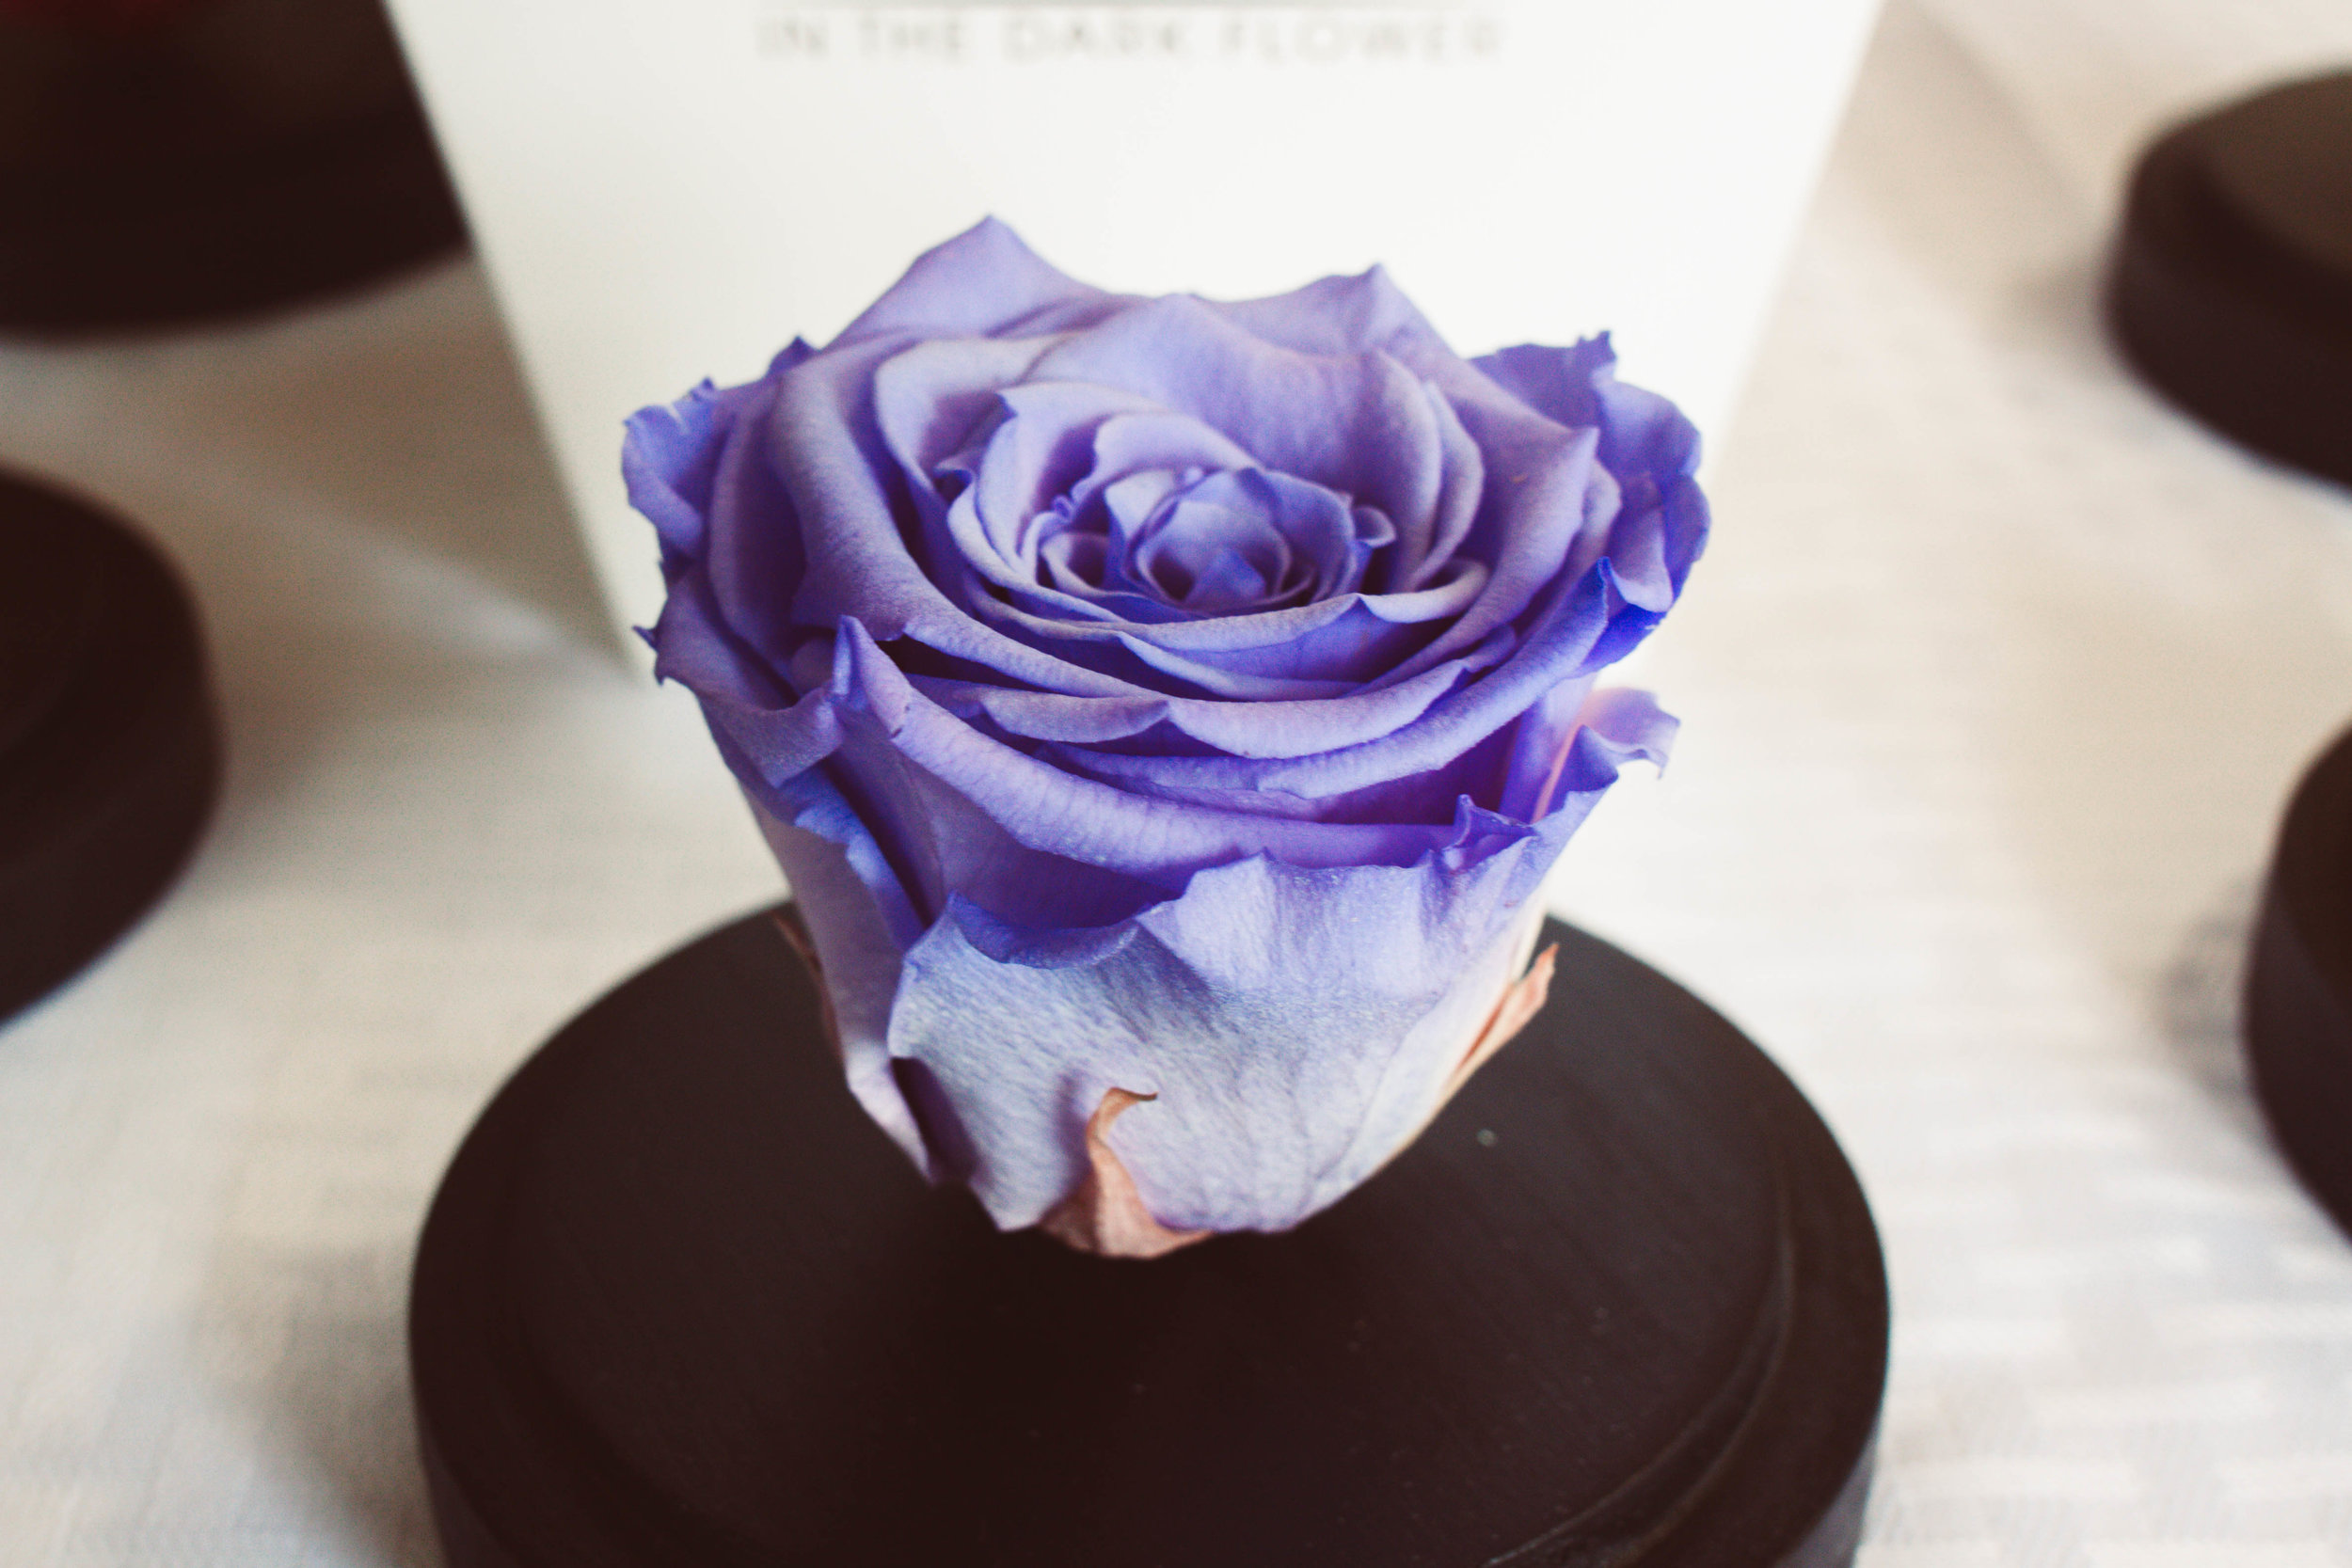 Glass dome – purple rose/glowing green